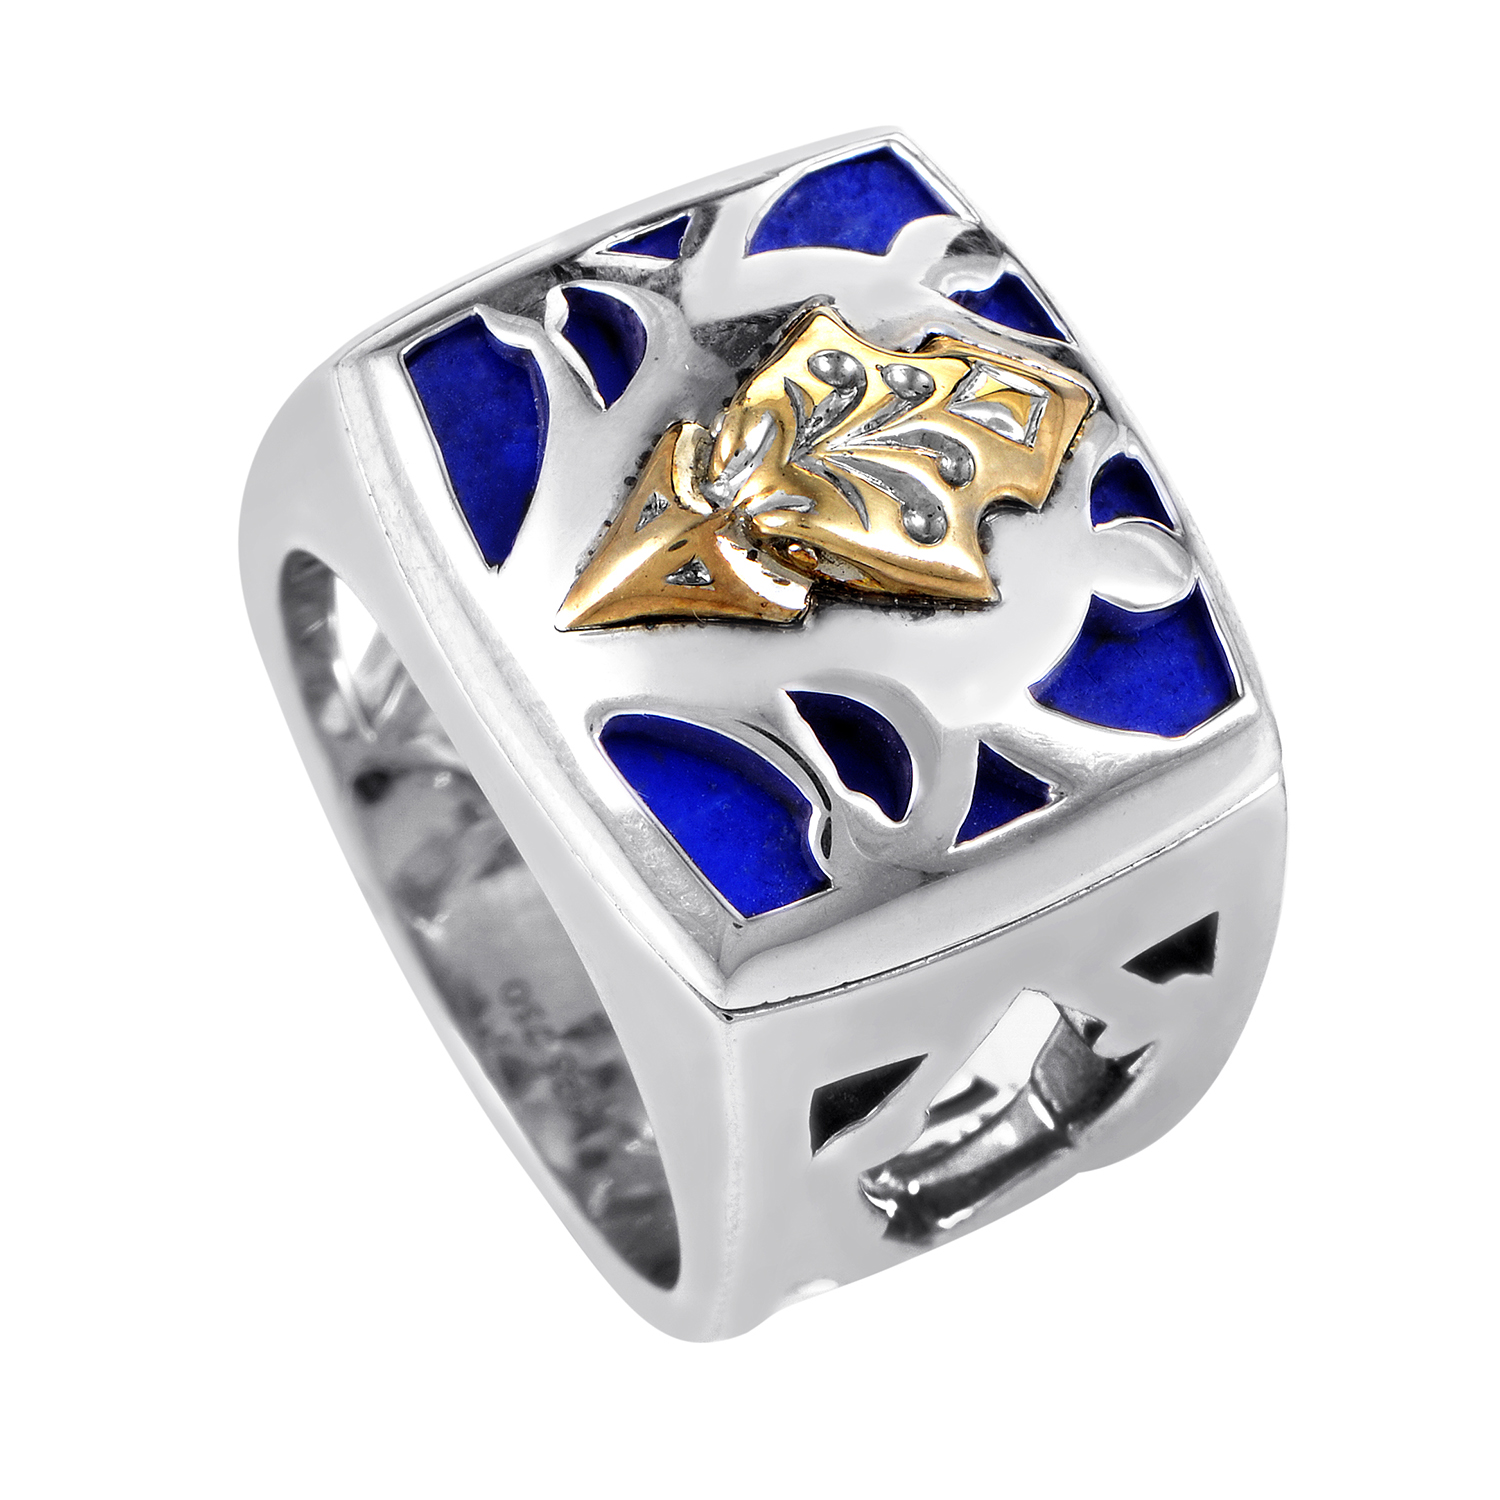 Raven Head Men's Gold-Plated Sterling Silver & Lapis Ring